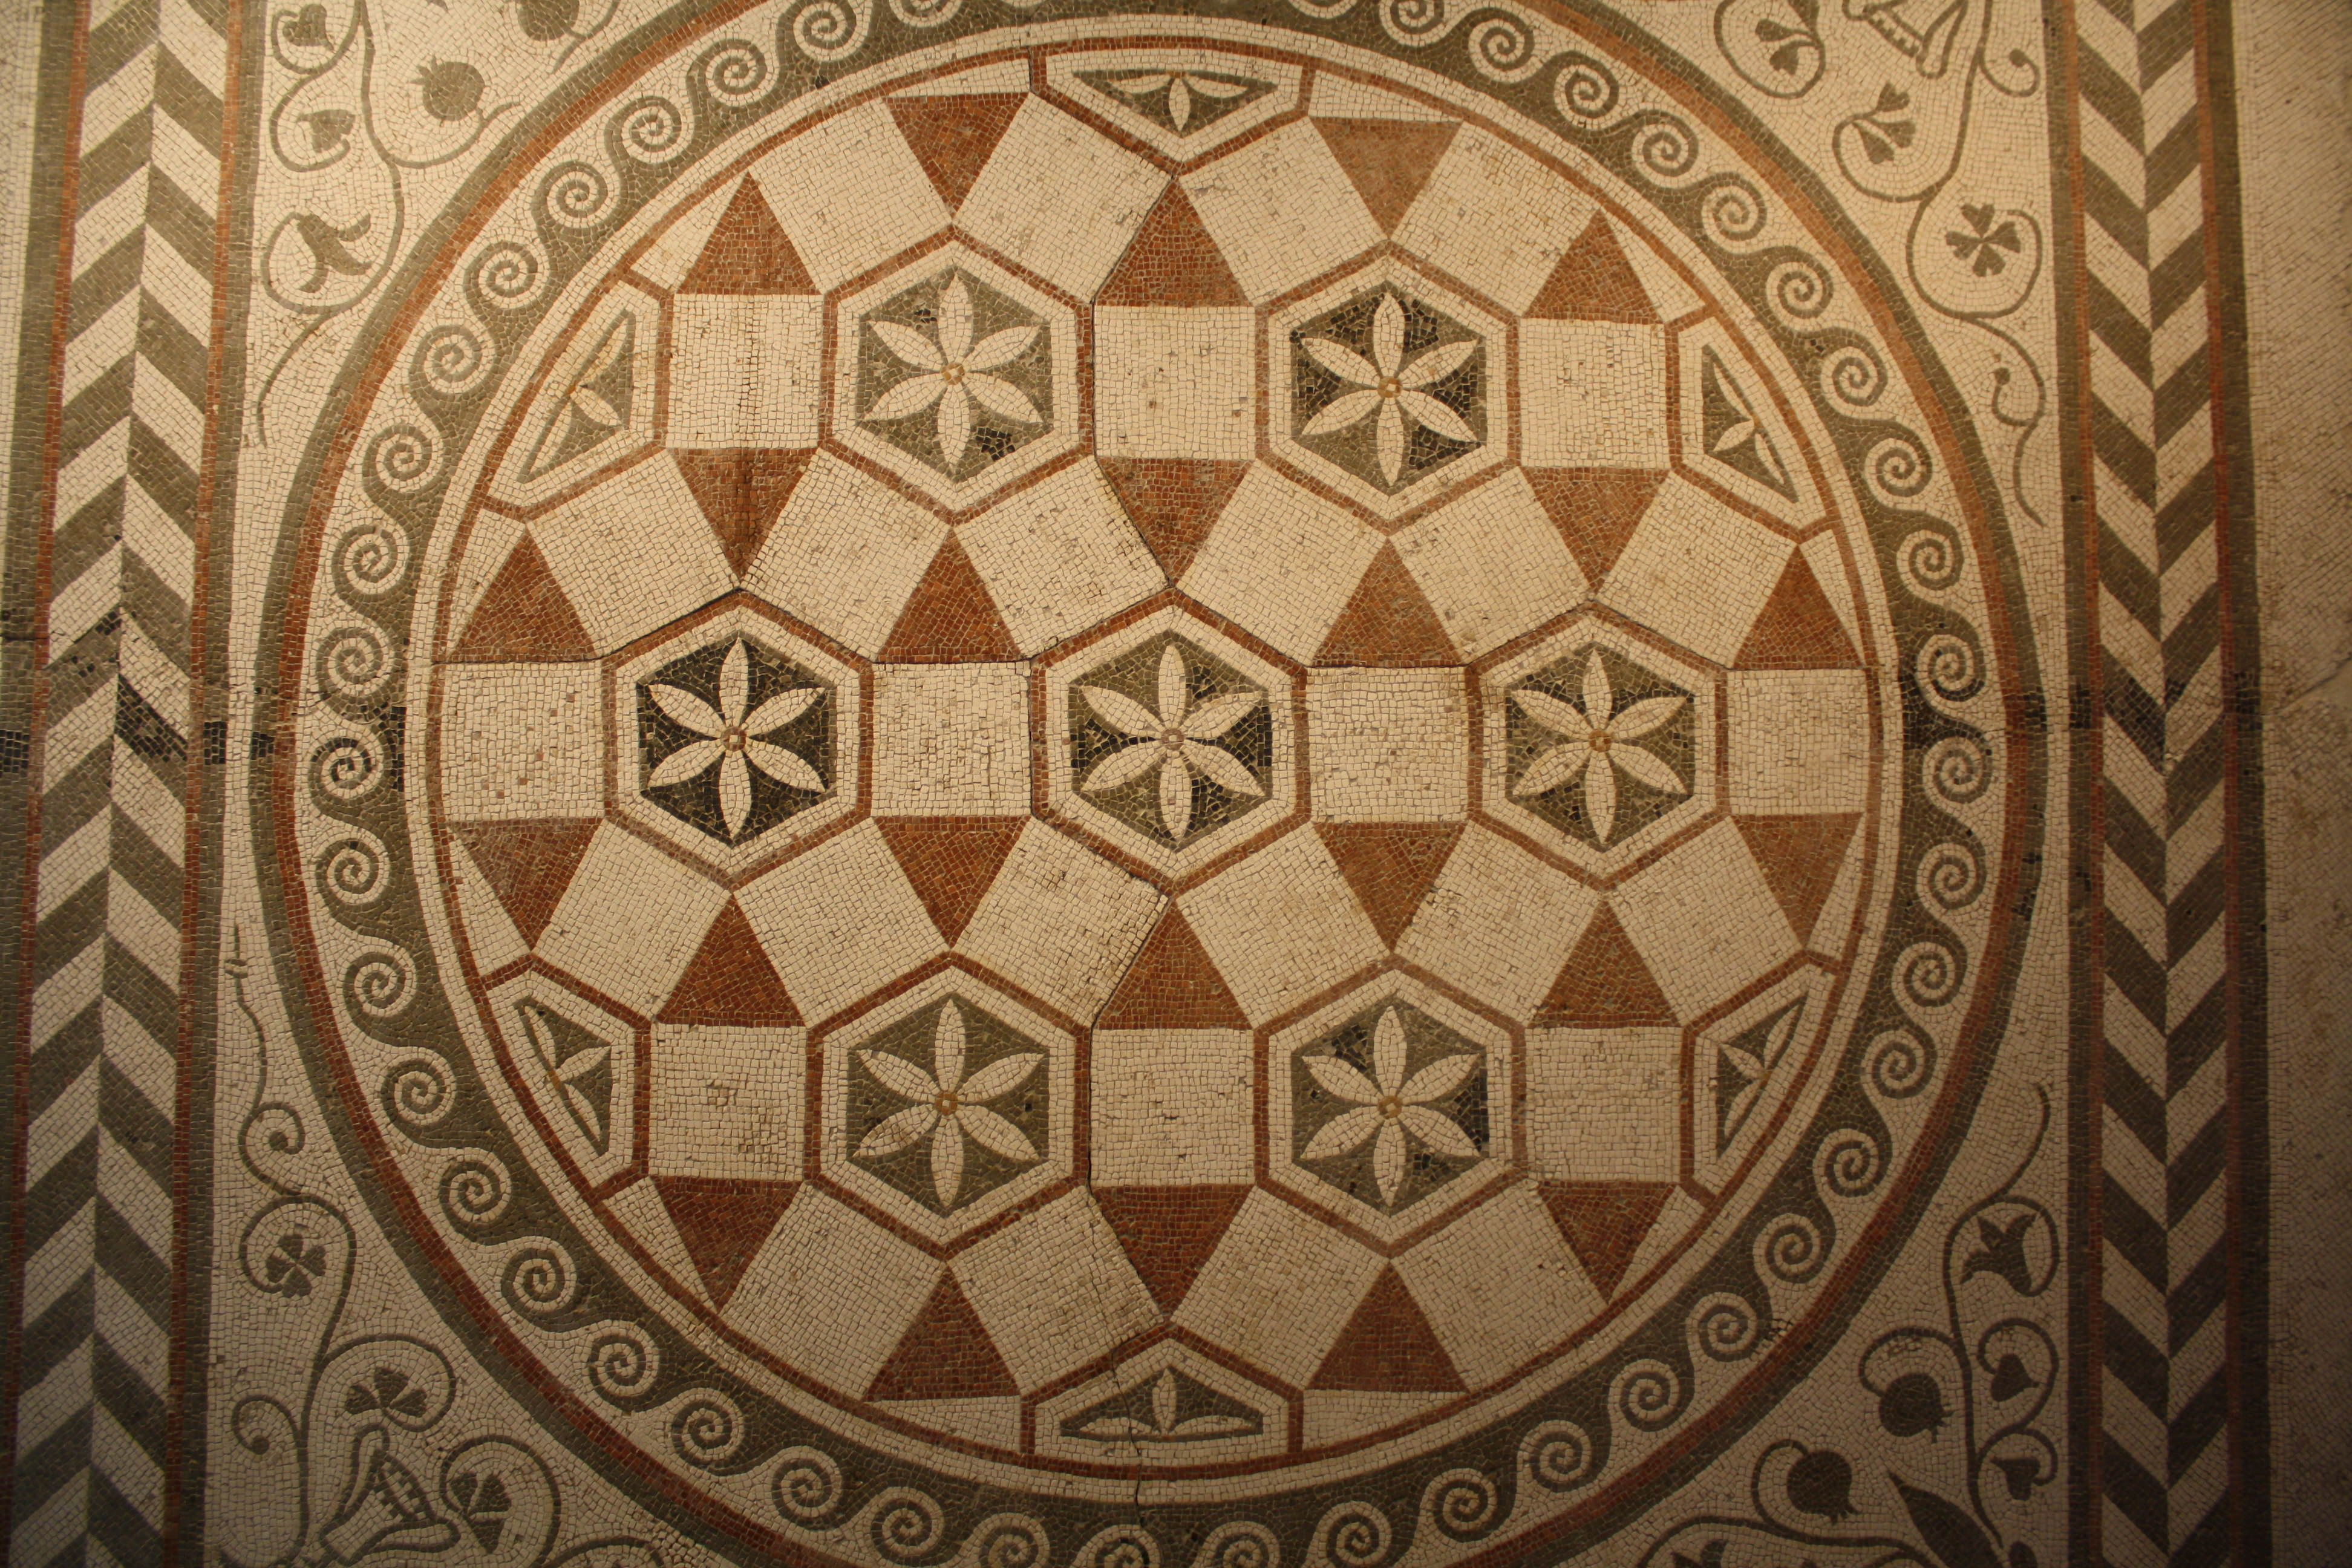 Roman Geometric Mosaic Illustration Ancient History